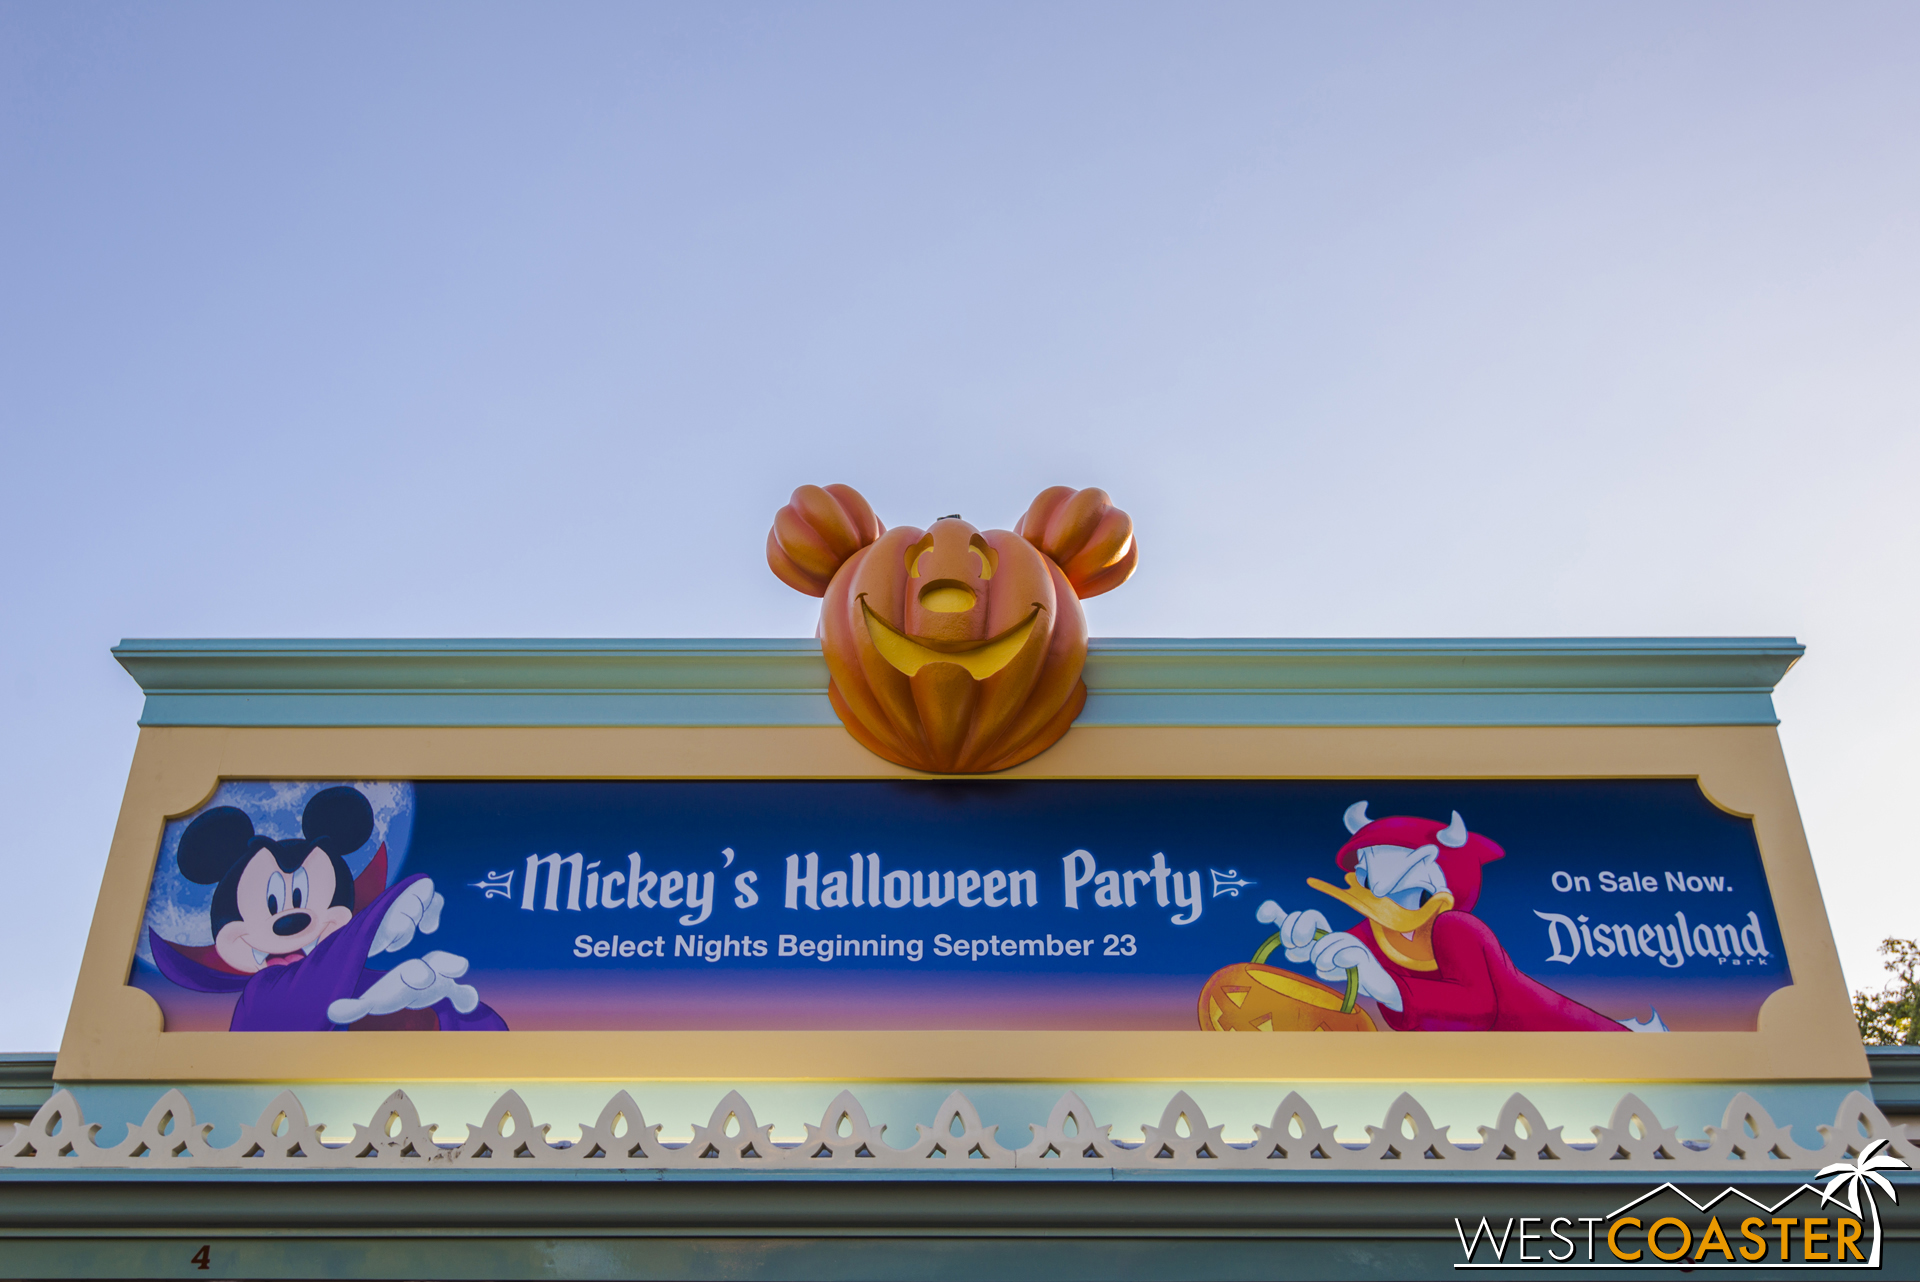 On the other side of the gates, advertisements of Mickey's Halloween Party are up. They are typically Mondays, Wednesdays, and Fridays this year.